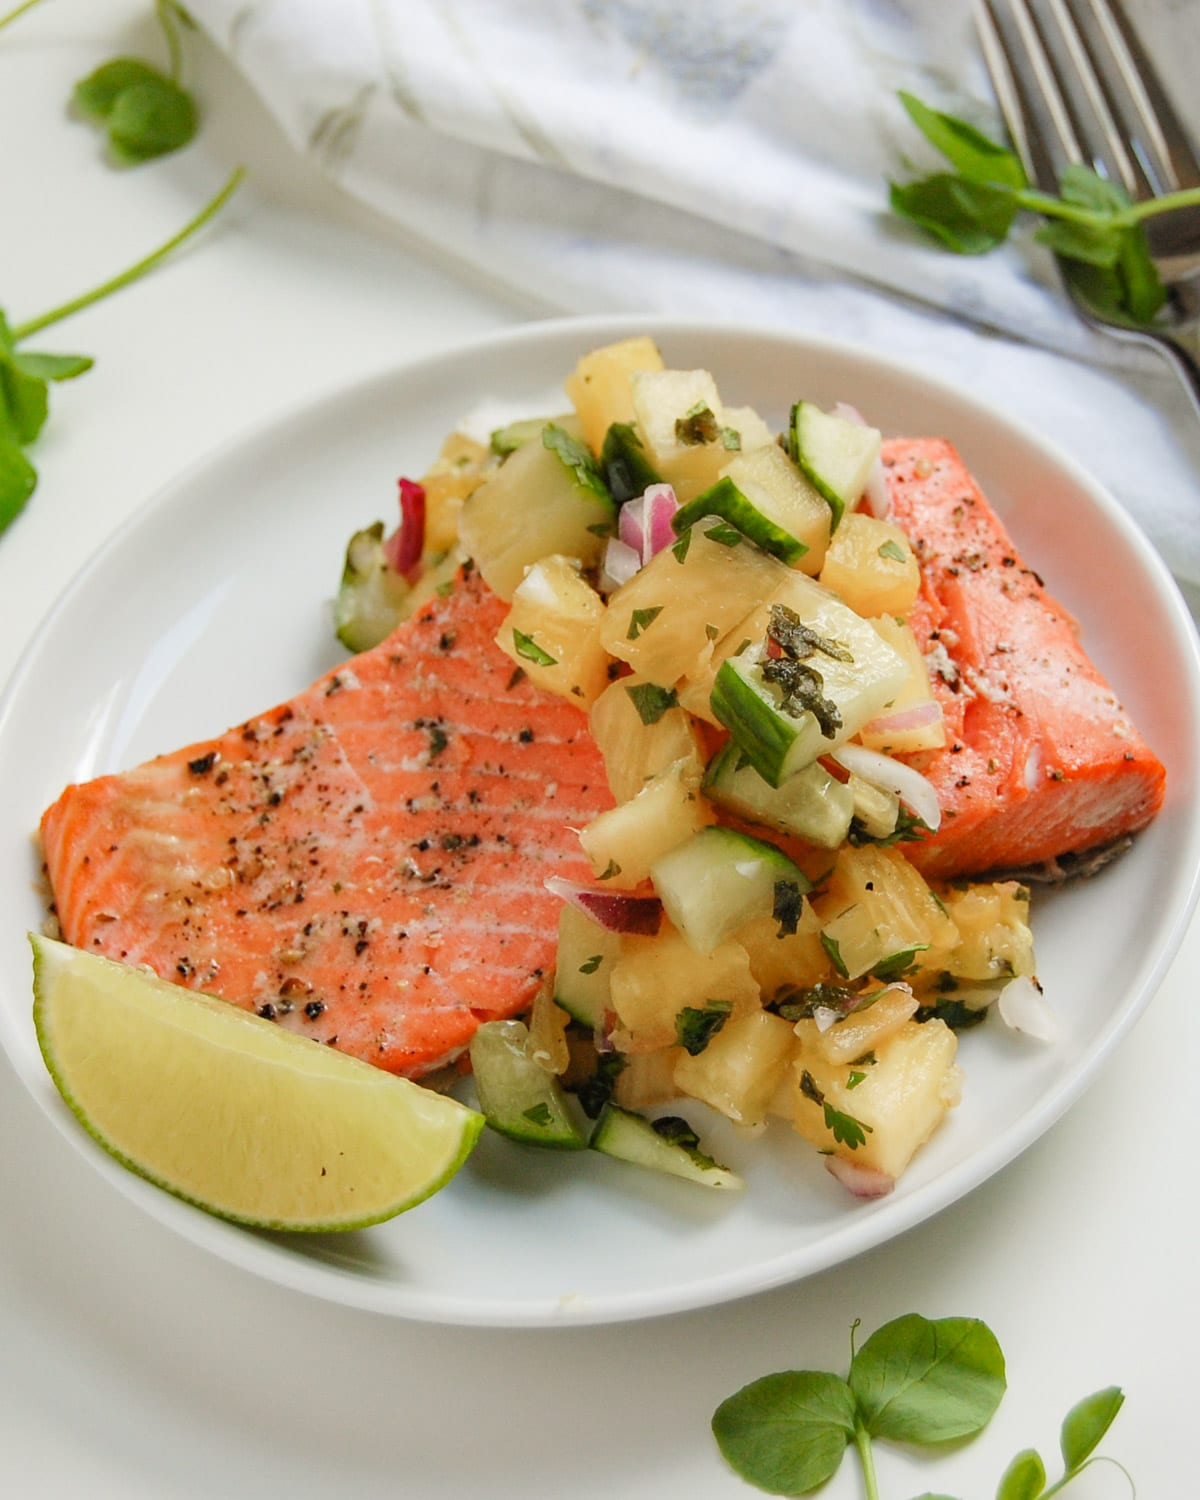 roasted salmon filet with pineapple salsa on white plate